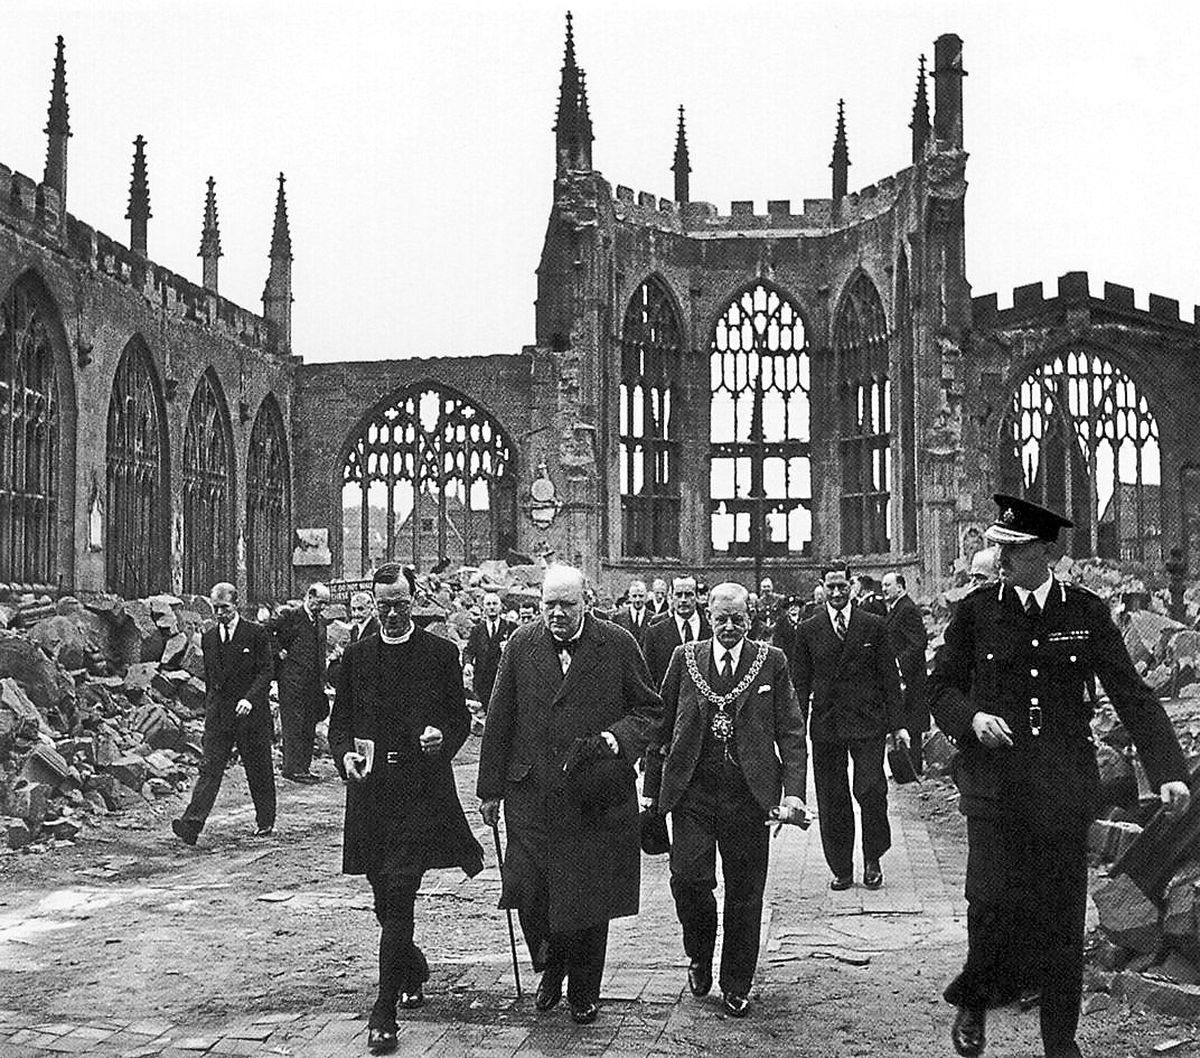 The Prime Minister Winston Churchill at Coventry Cathedral to assess the damage and meet people in the city. He beefed up air defences across the Uk after the attack.